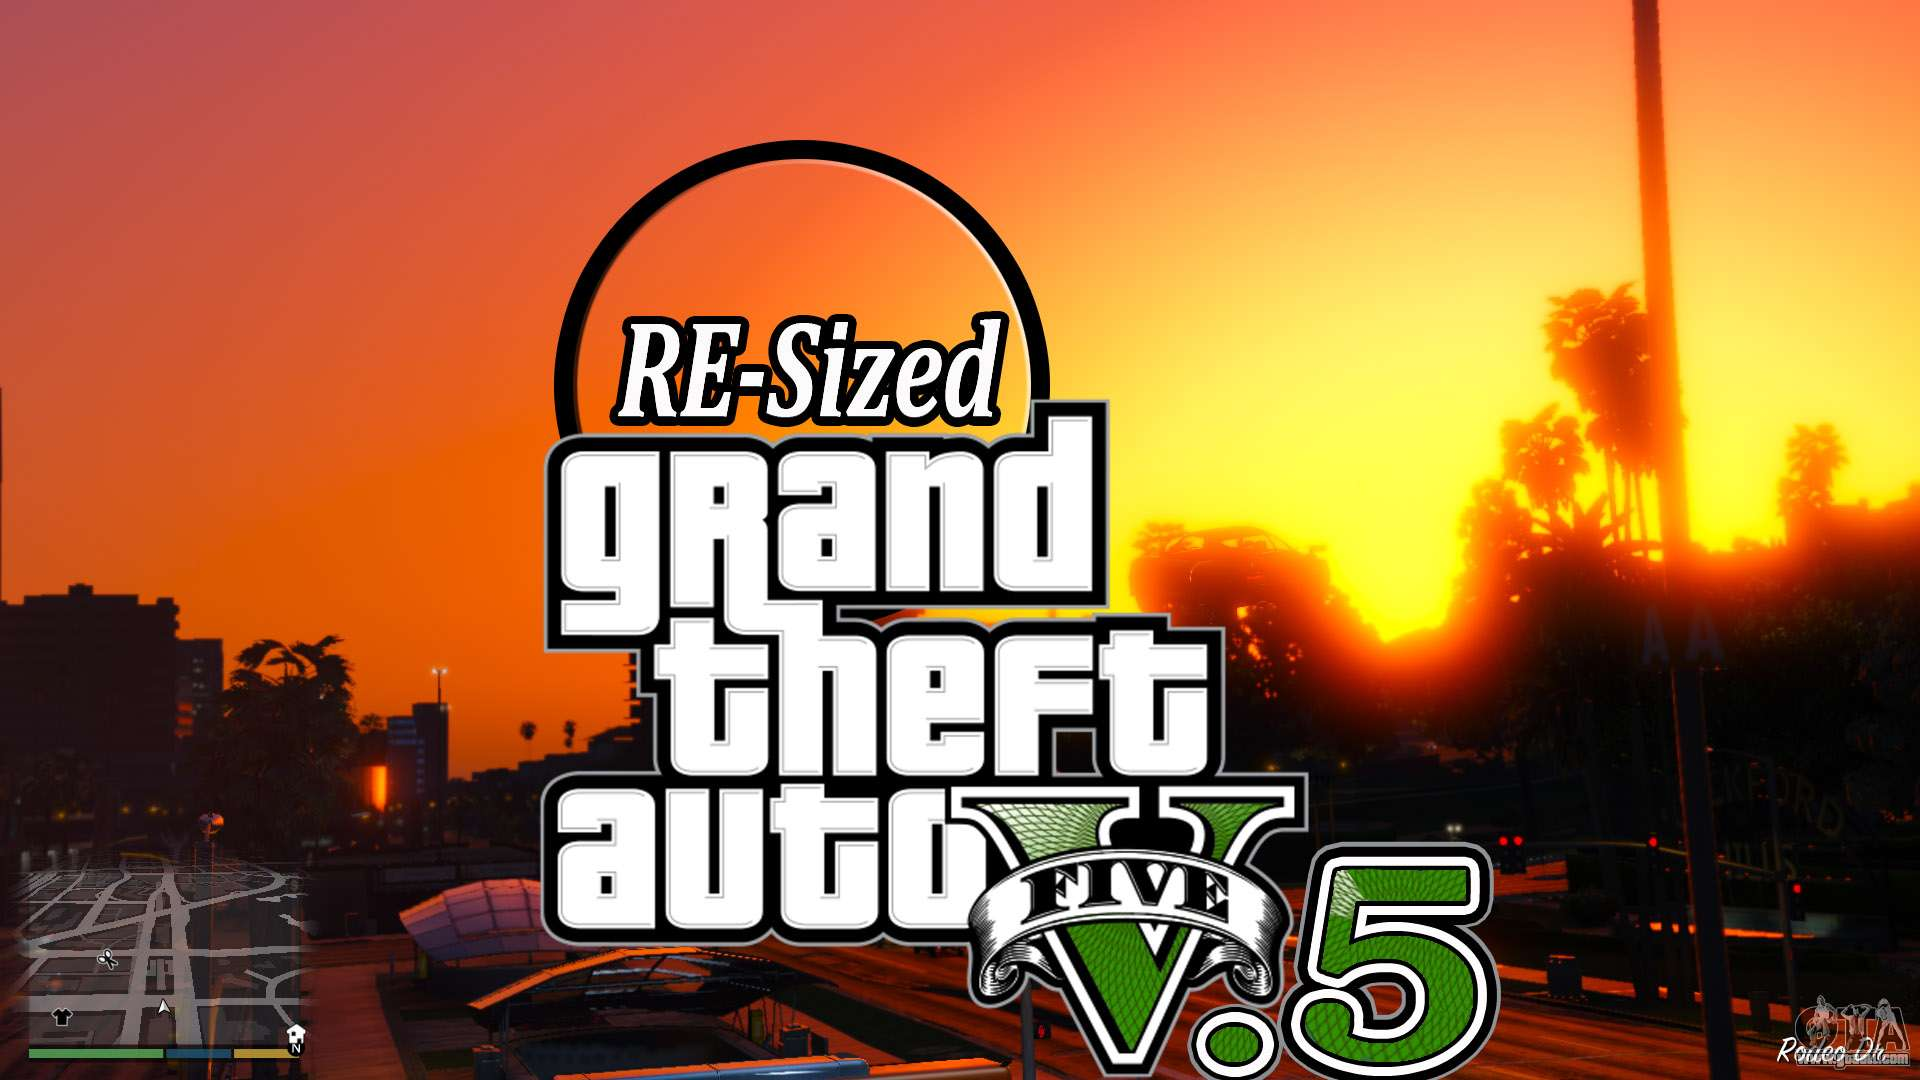 fast rc cars with 80098 Gta V Re Sized V55 Stable on Image 2098989 furthermore 2015121801 in addition 435 Gta Iv Hud as well Samsung Remote Control Tm1240a Bn59 01180a Bn59 01180a likewise 64668 Tsunami.